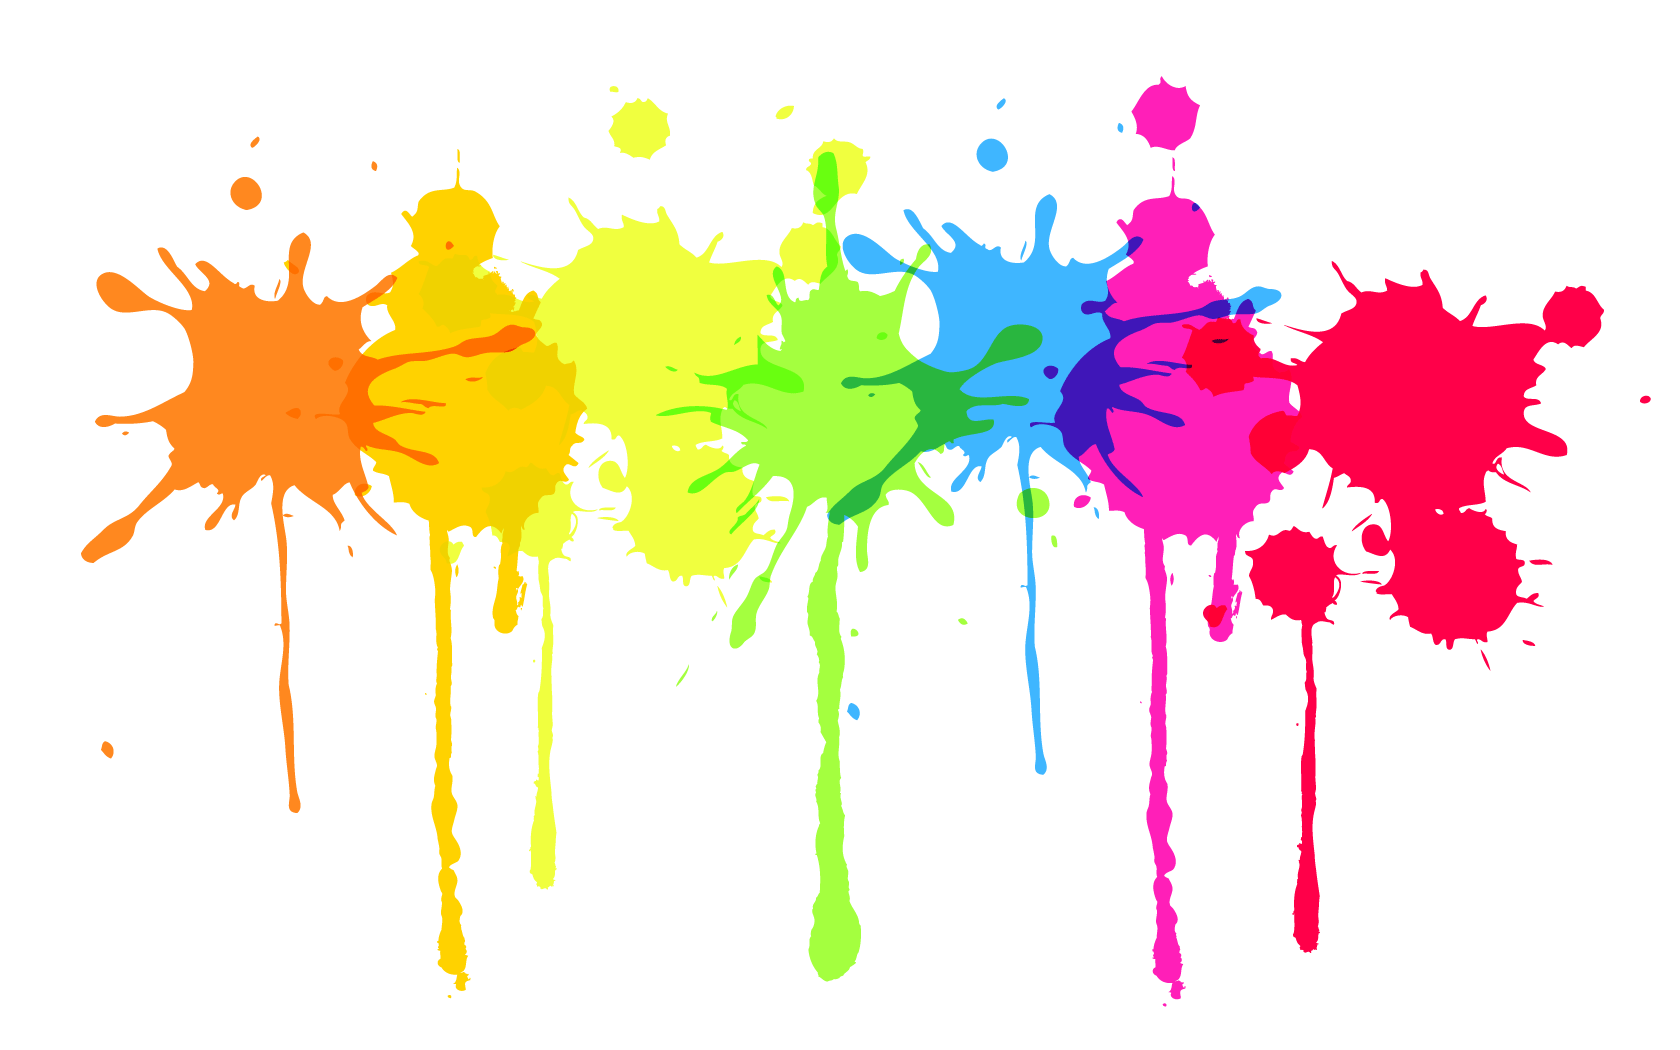 20 Paint Splatter Transparent Background Free Cliparts That You Can